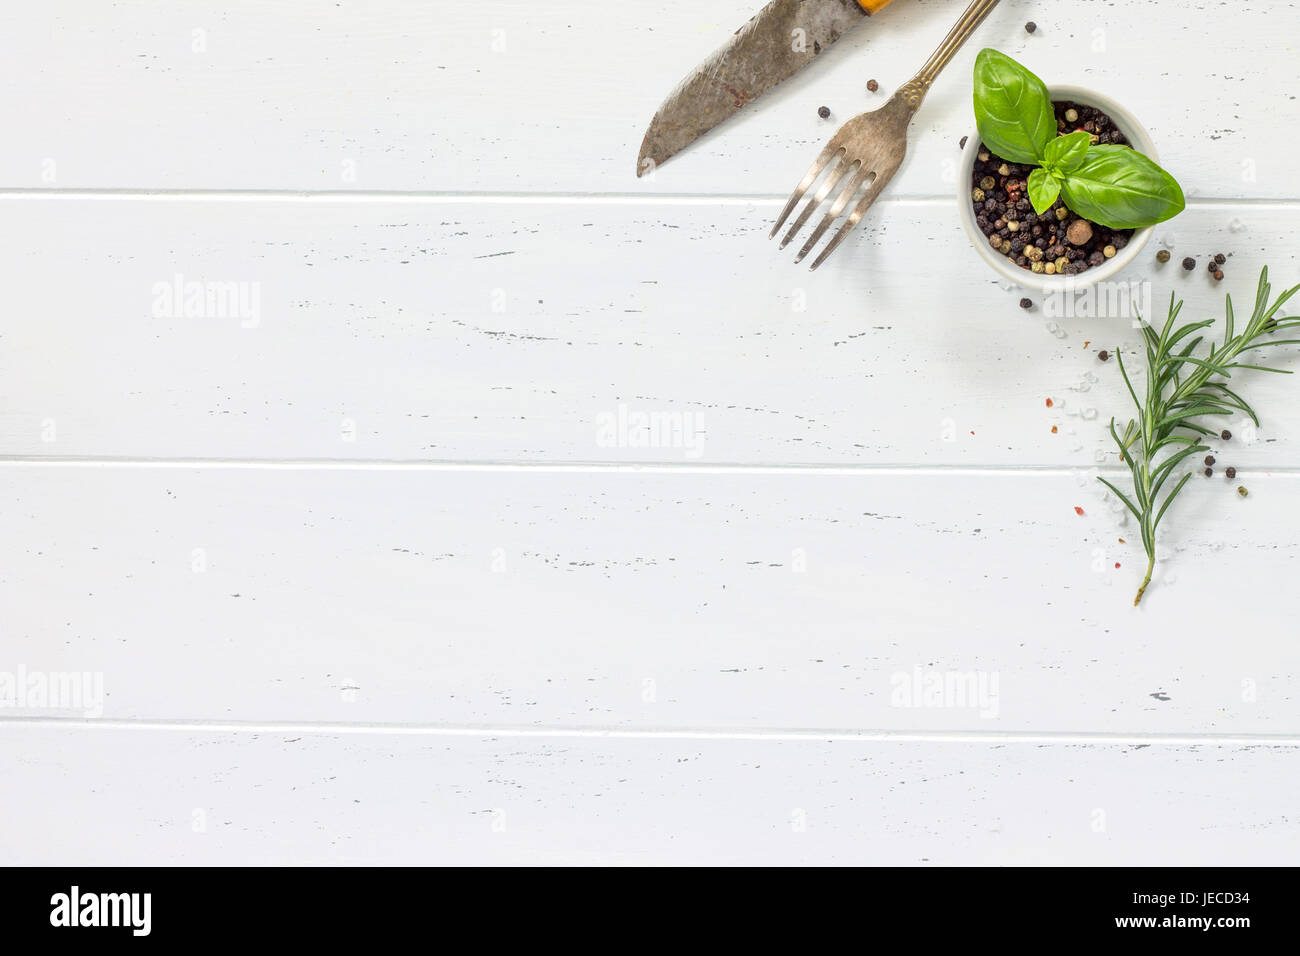 White wooden kitchen table. Background cooking with fresh herbs and spices, copy space, top view. - Stock Image